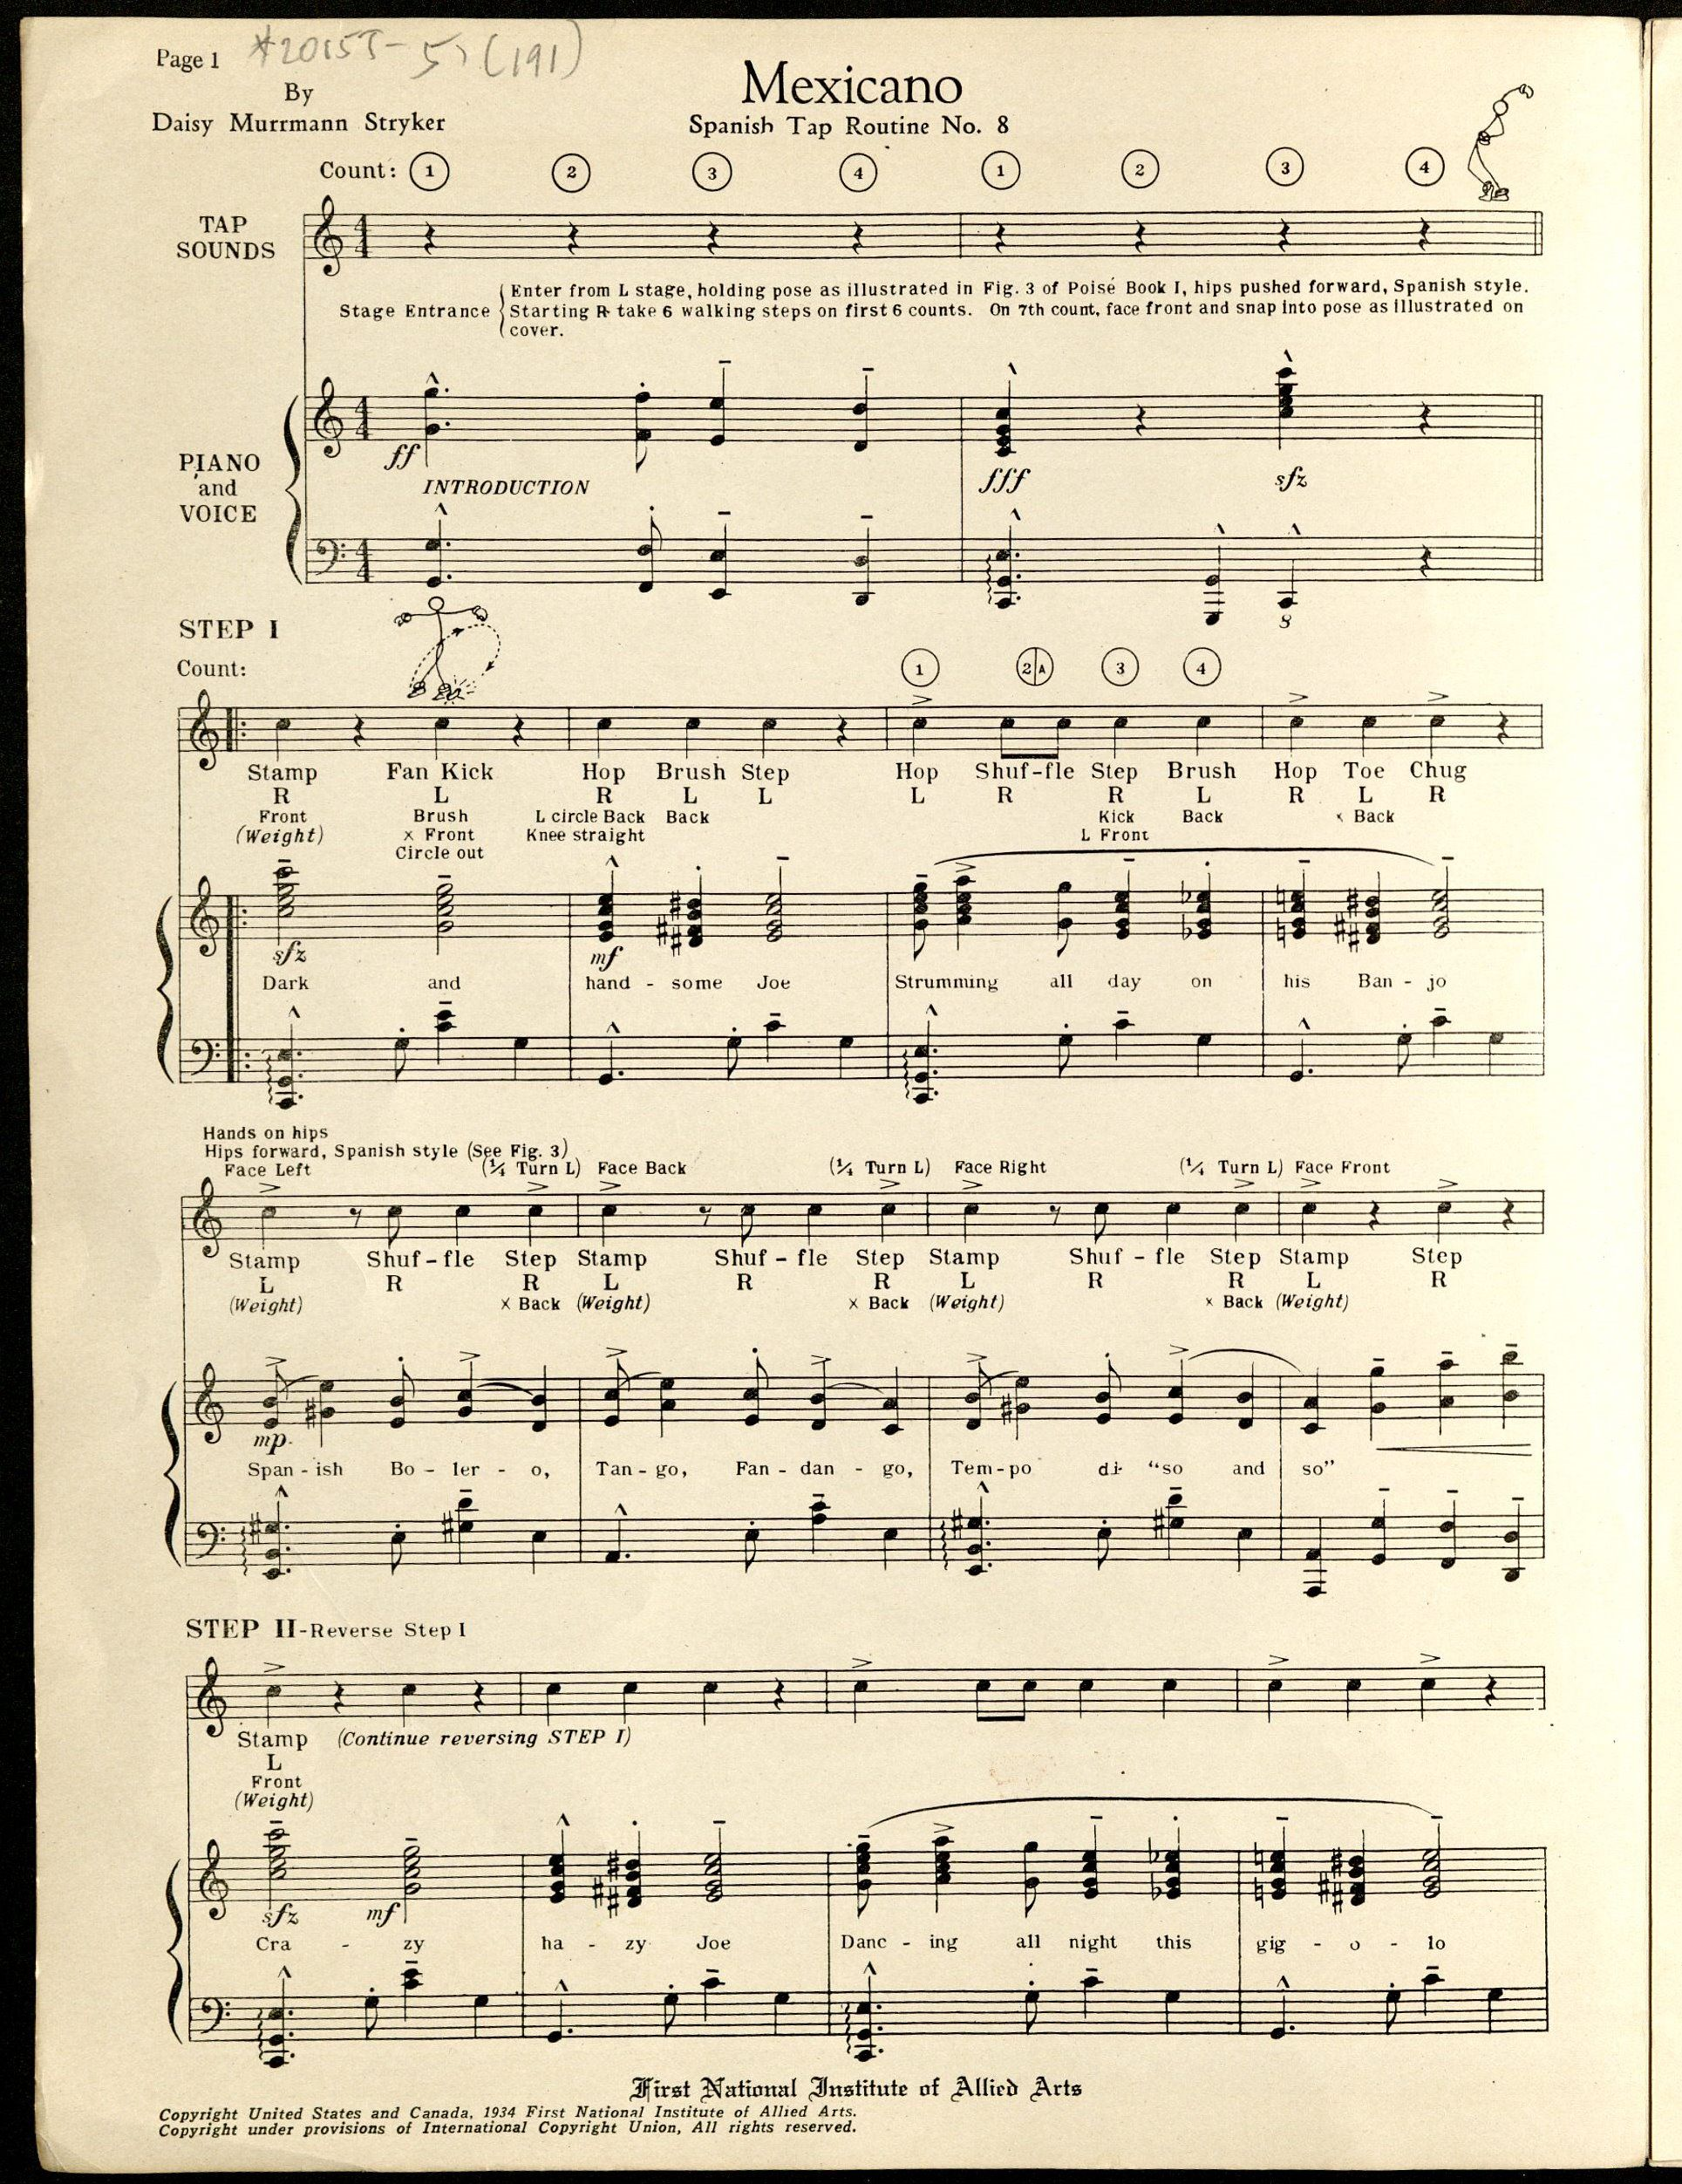 Sheet music 618 caption